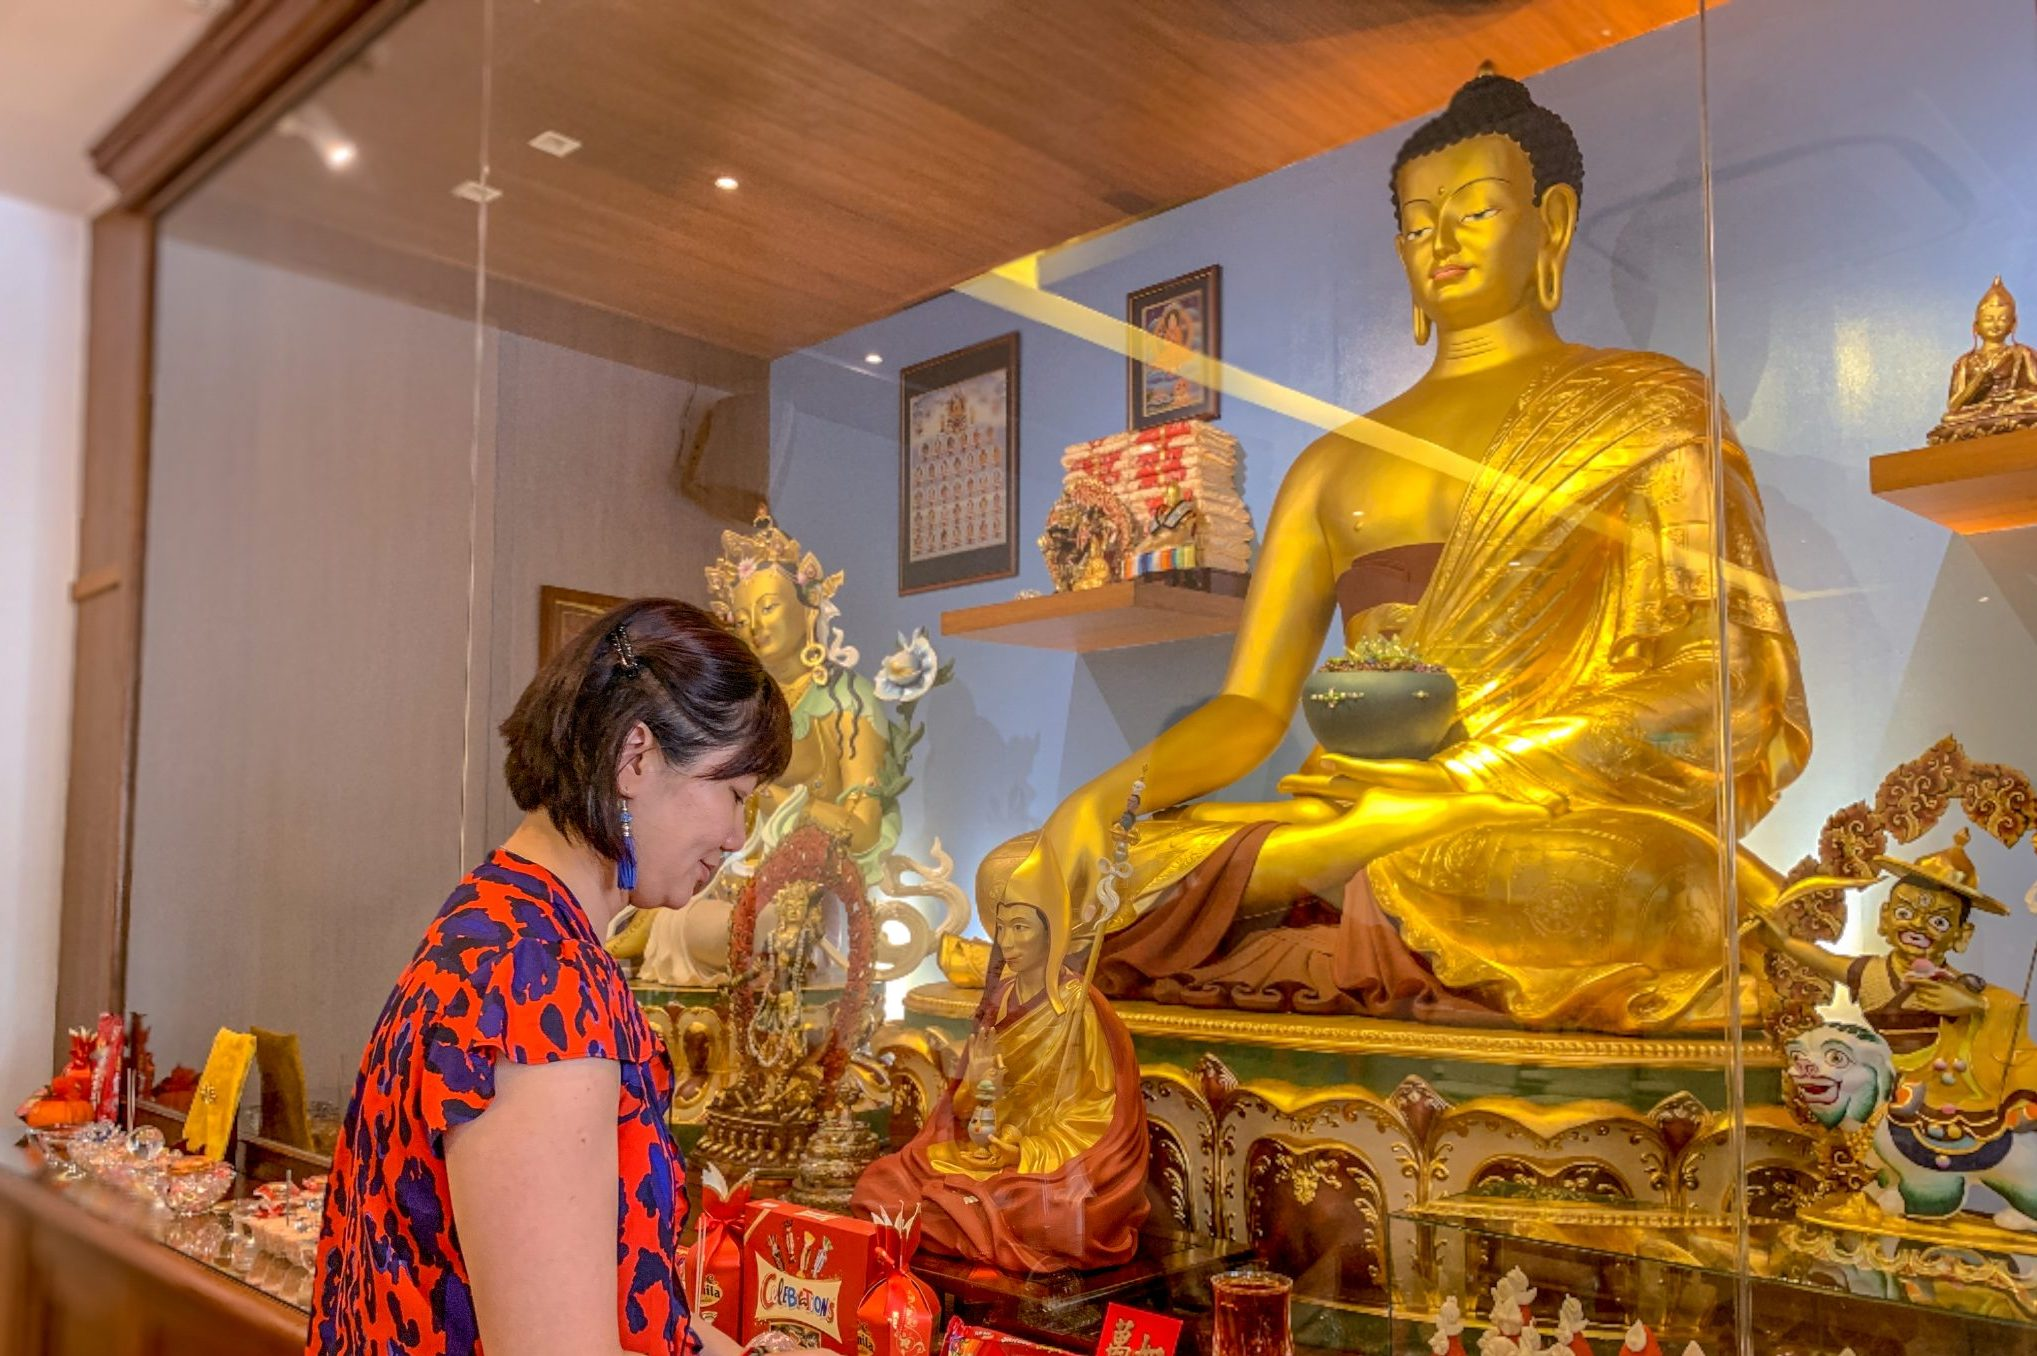 Buddha statue and woman Singapore